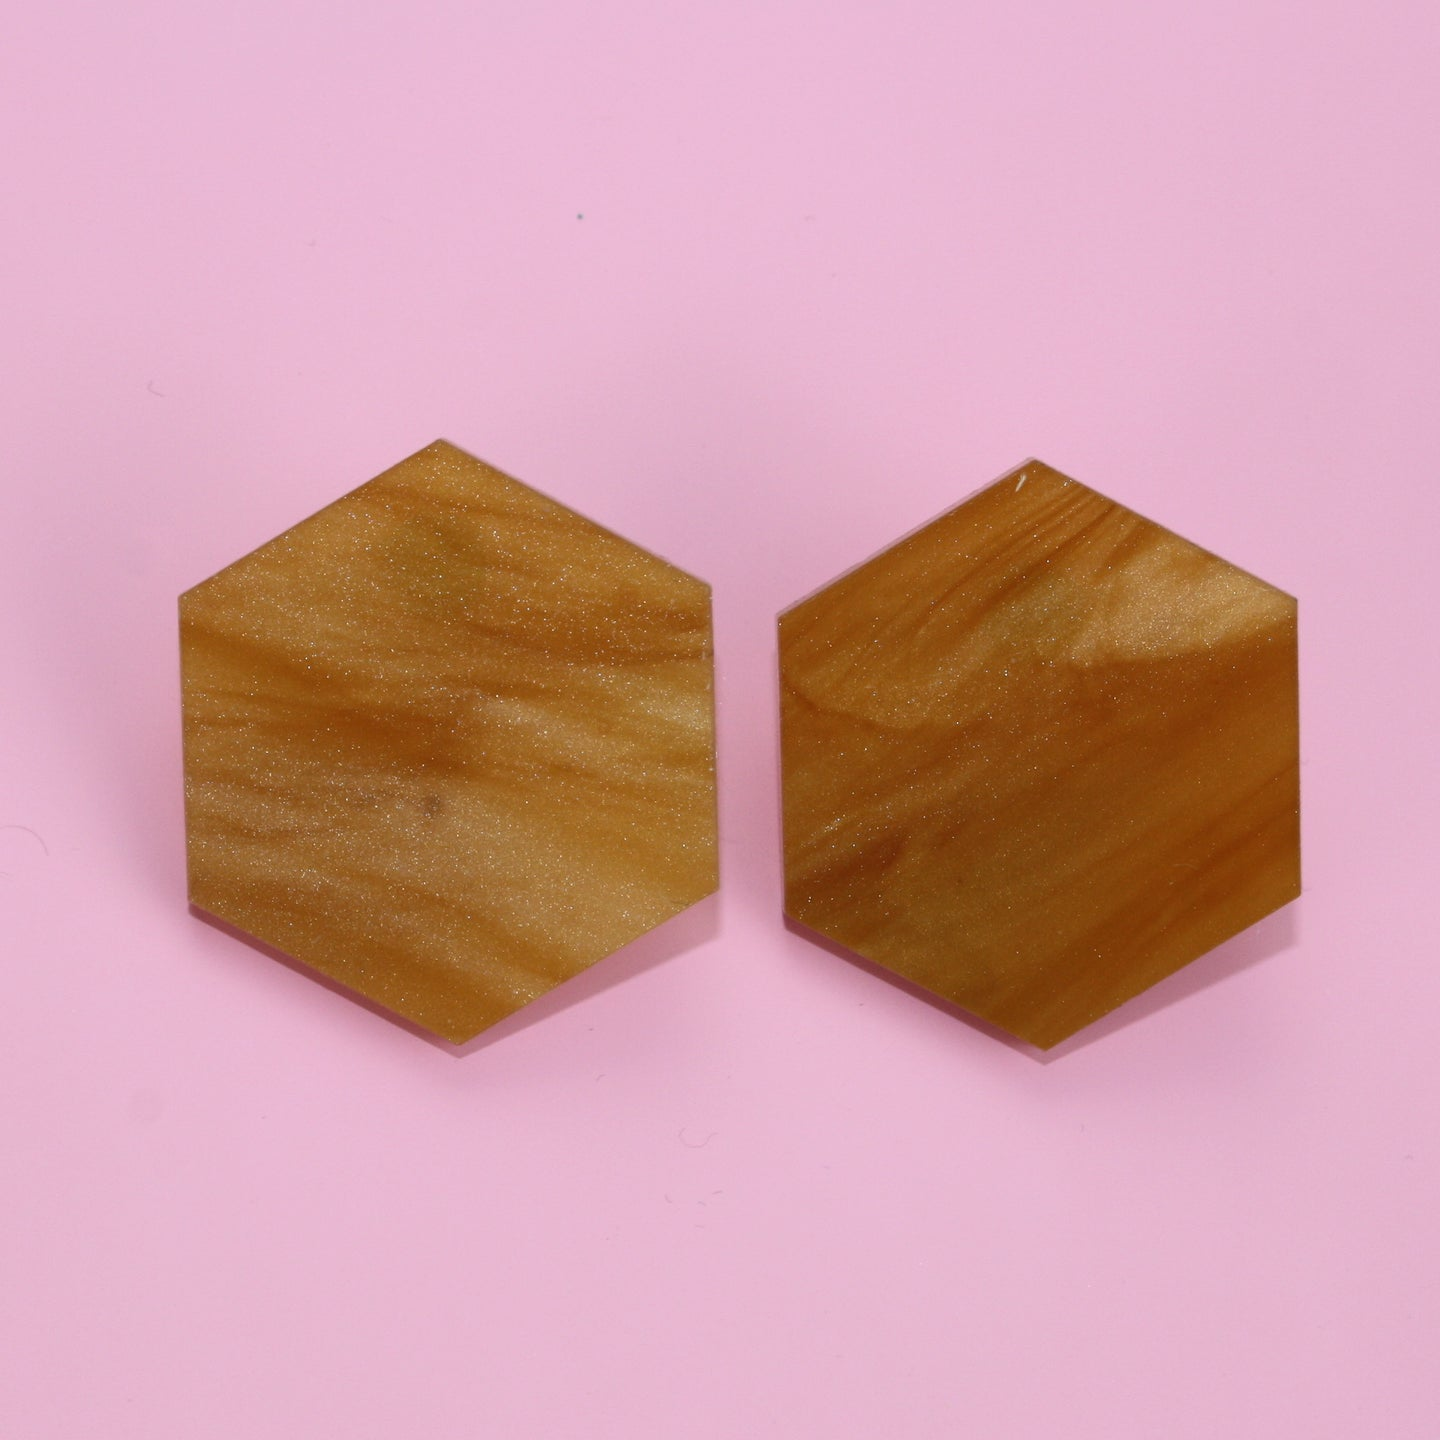 Honeycomb Stud Earrings (Large)